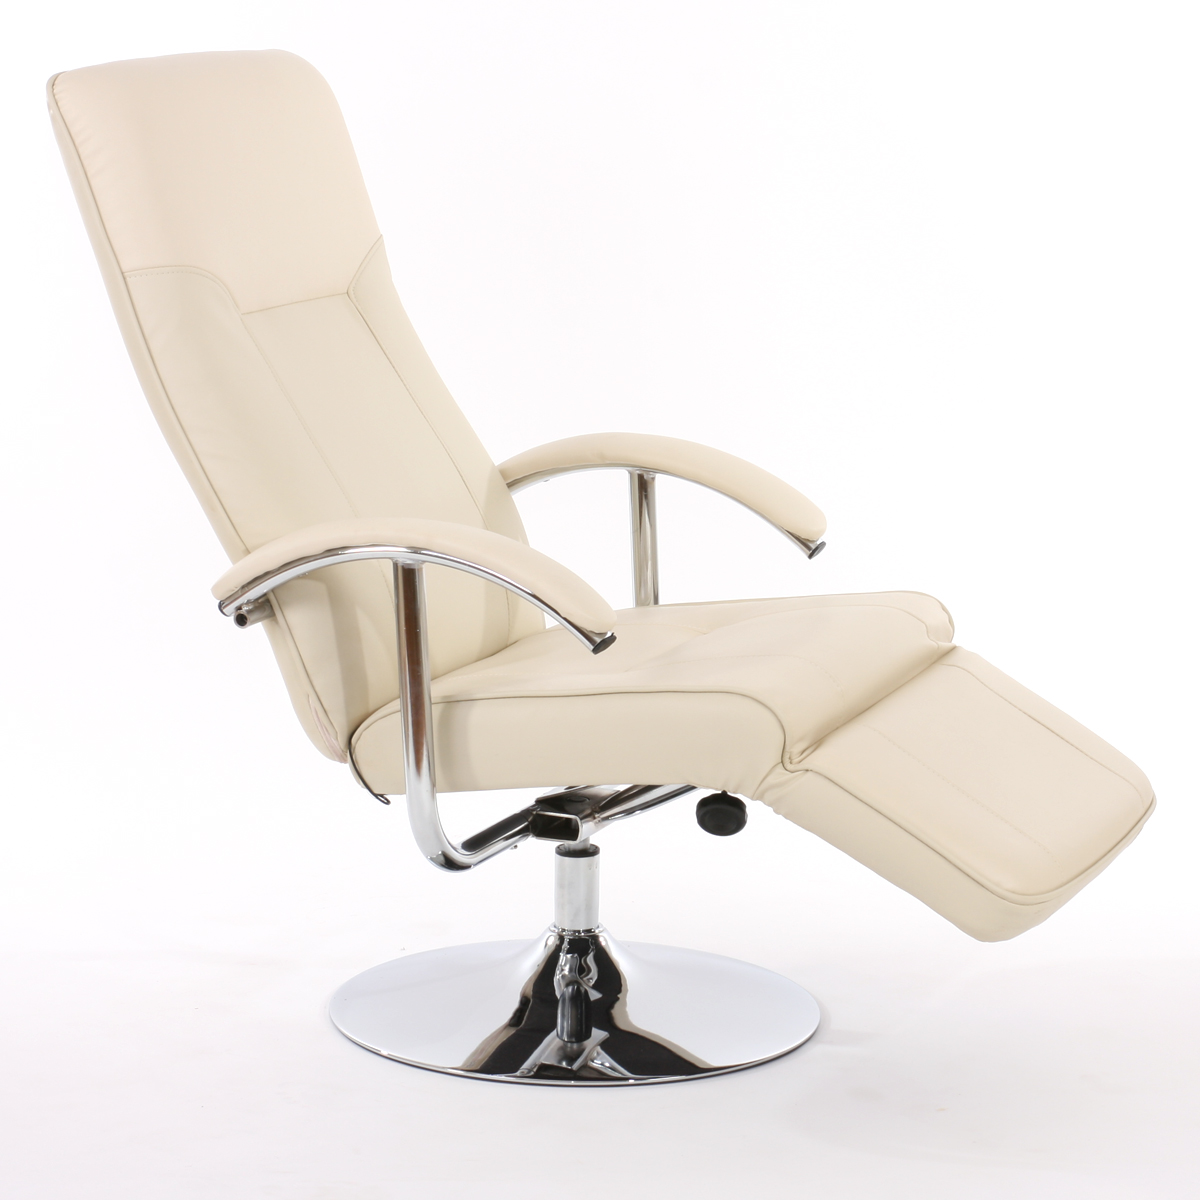 Fauteuil Inclinable Design Fauteuil Relax Peu Encombrant Fauteuil Relaxation Fonction